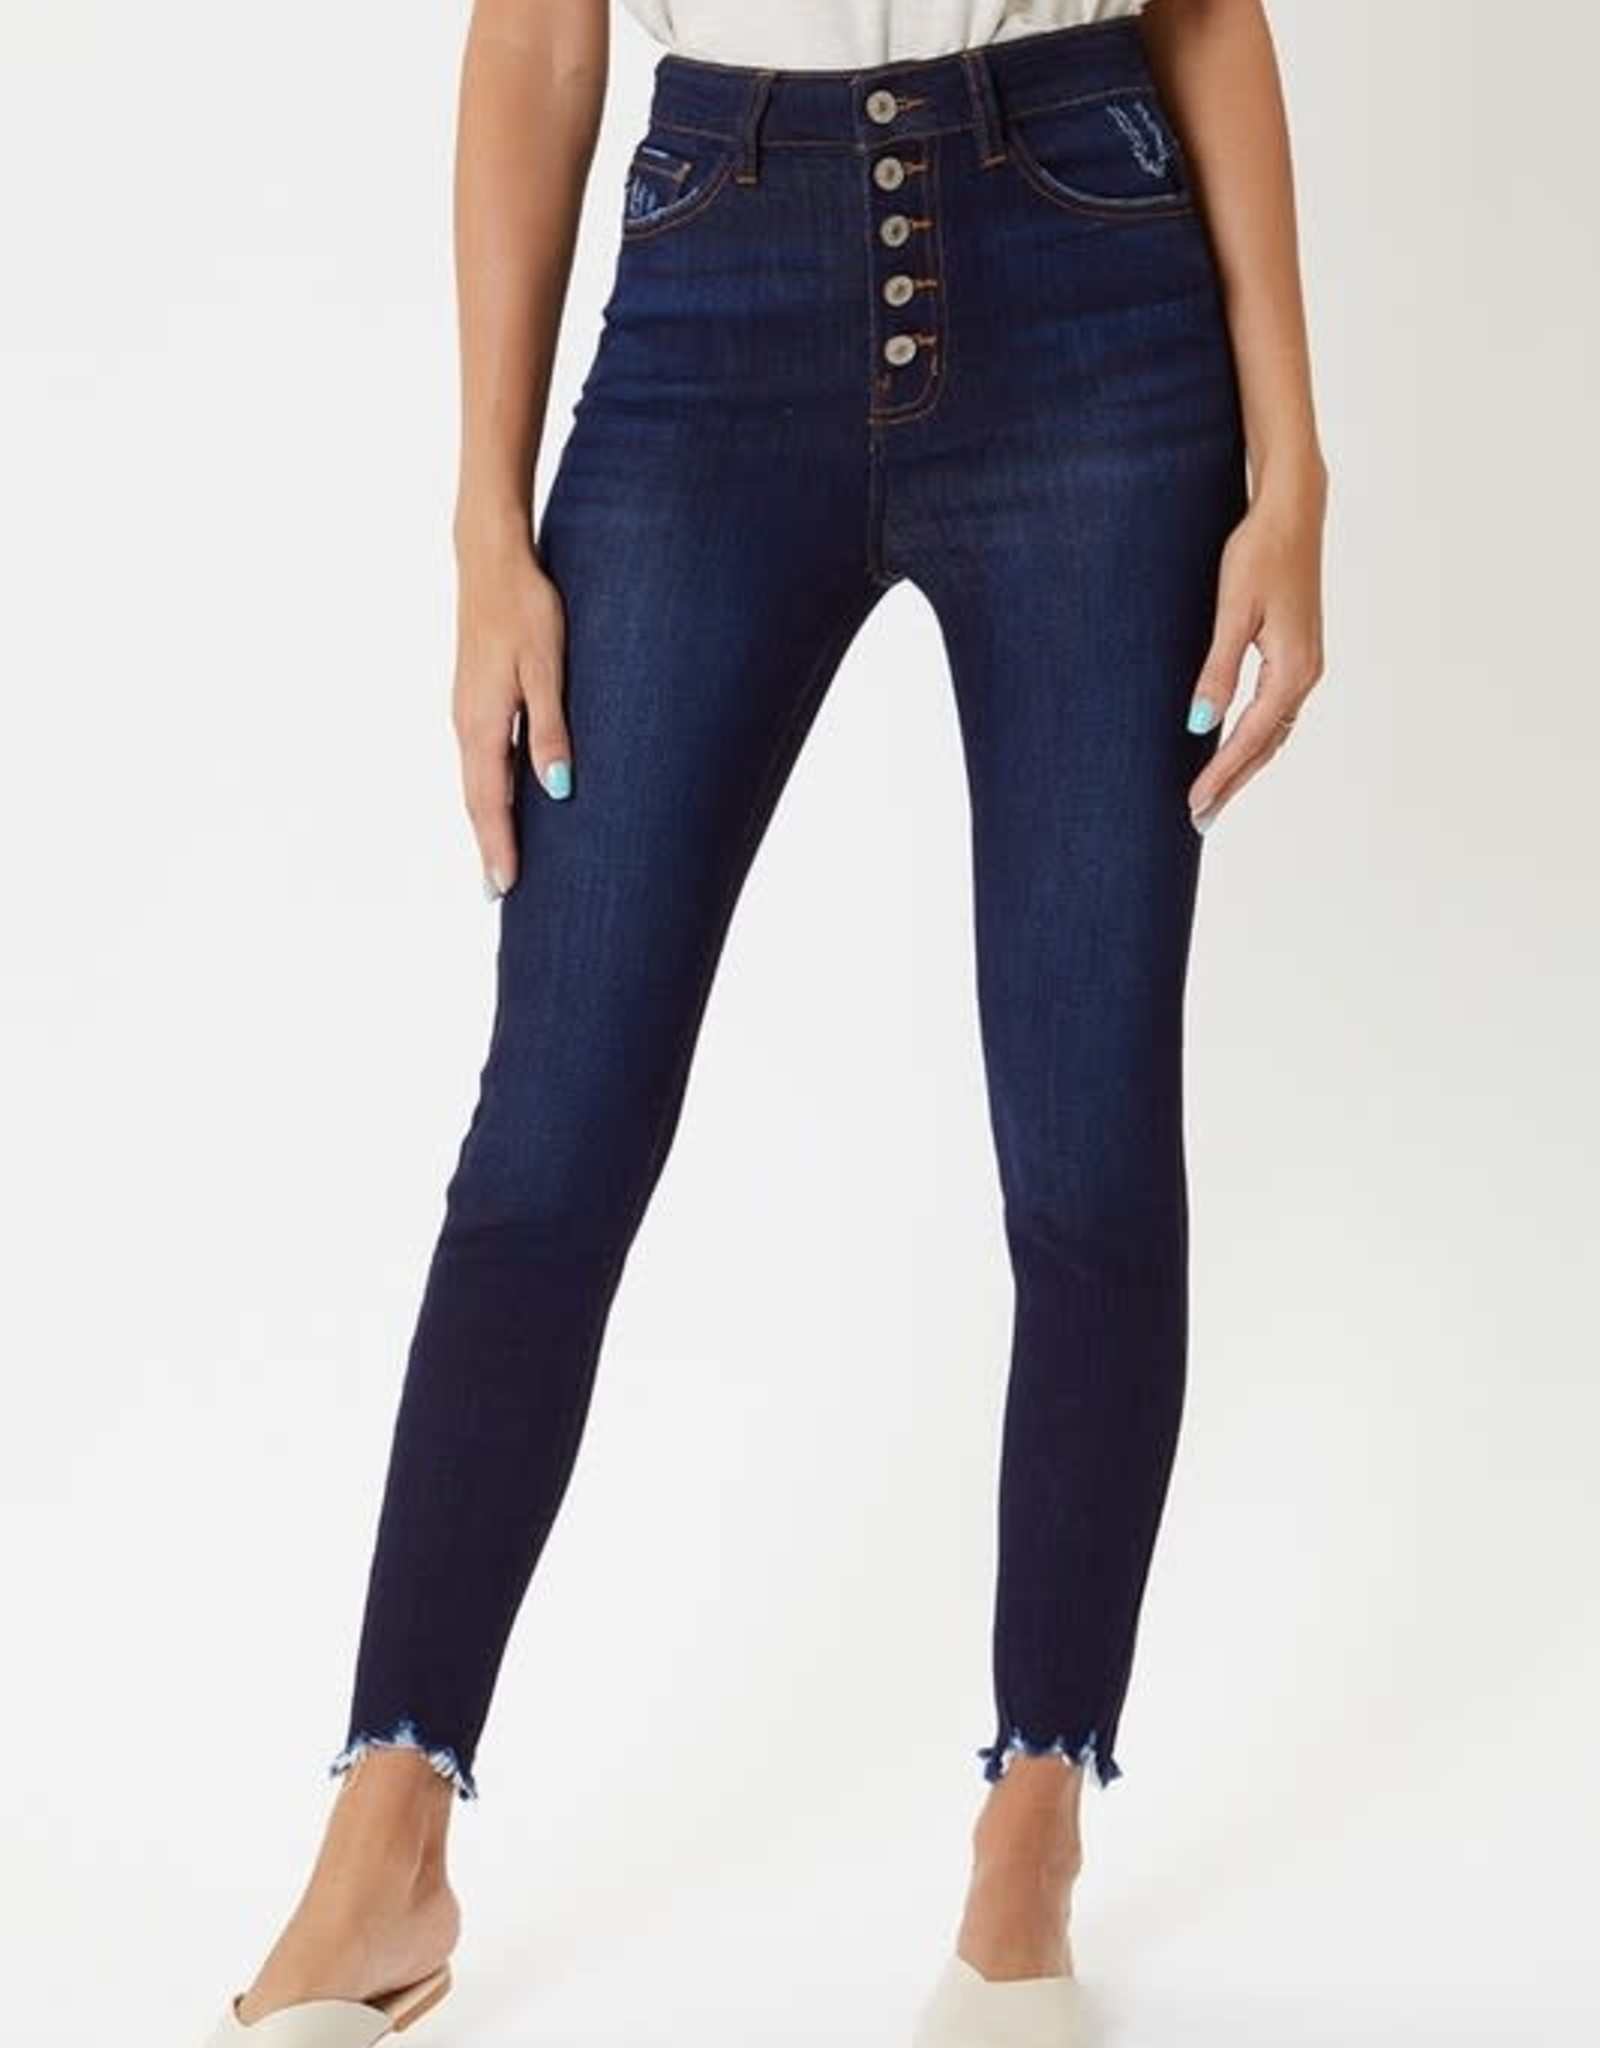 Kancan Dark Wash High Rise Button Fly Ankle Super Skinny